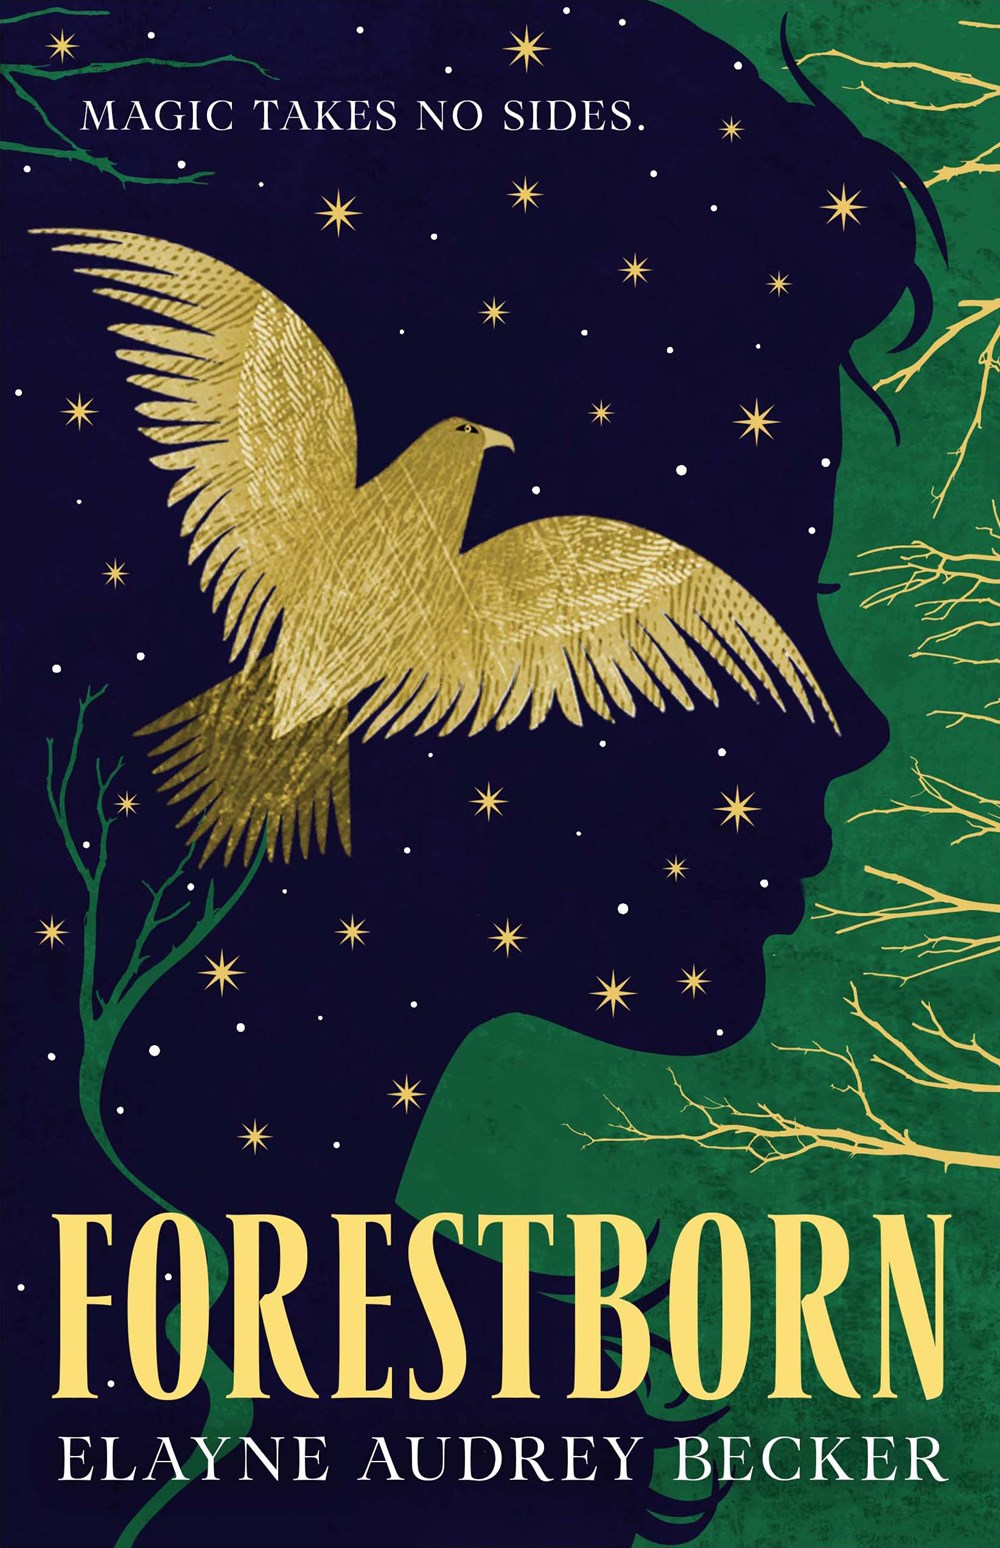 When Does Forestborn By Elayne Audrey Becker Release? 2021 YA Fantasy Releases